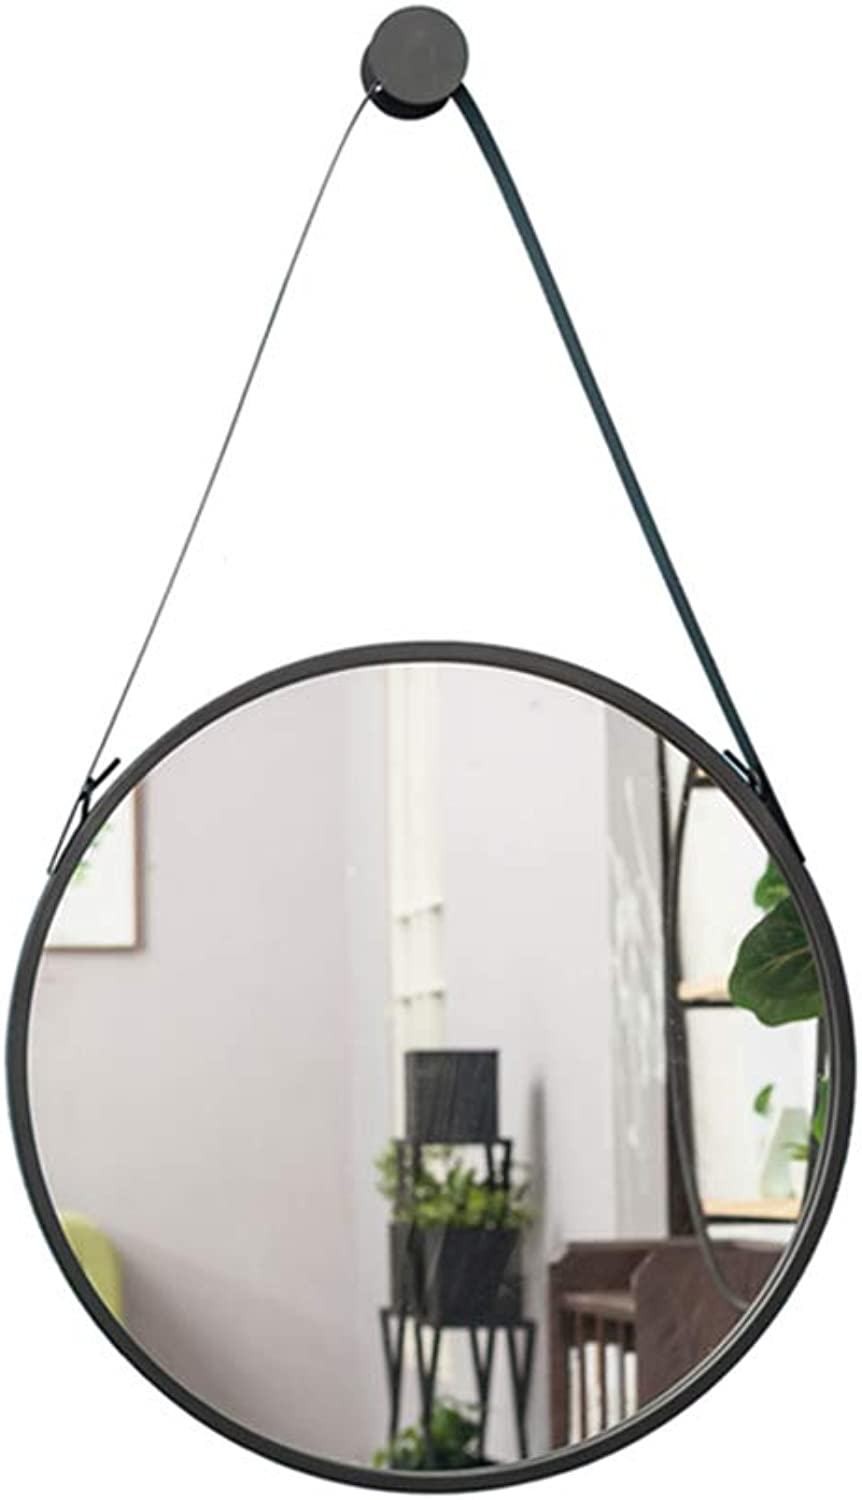 Wall Hanging Mirror Round Diameter 30 40 50 60 70cm for Bathroom Living Room Bedroom Glass Makeup Mirror Black Metal Frame with Hanging Fixings